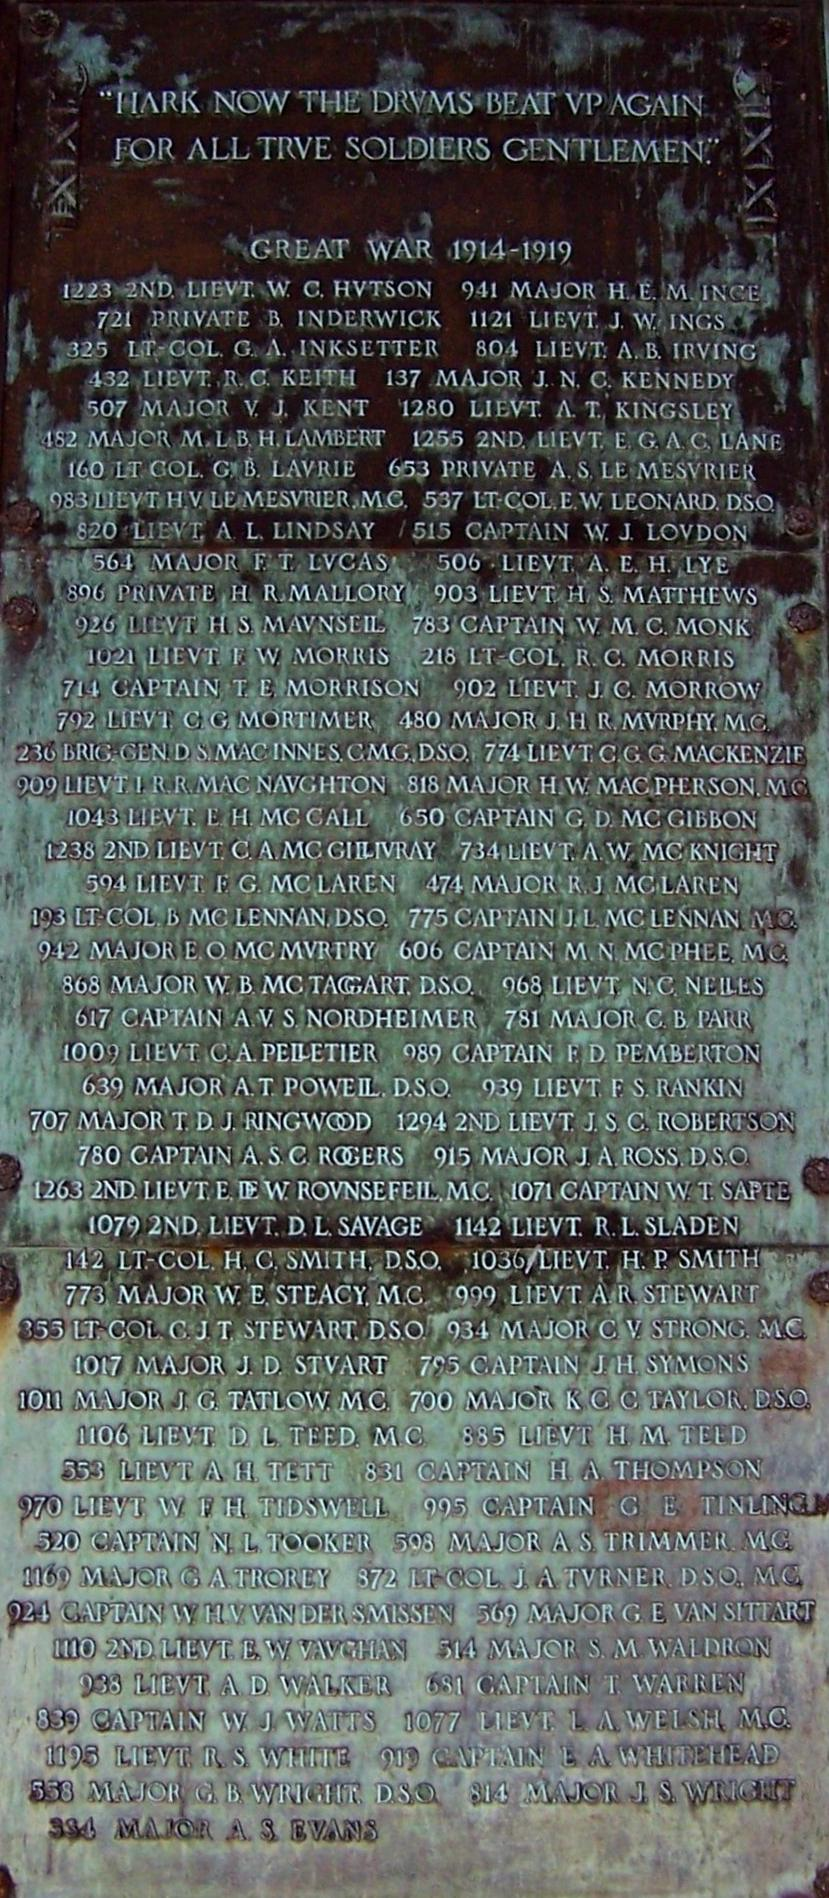 Memorial – Ex-cadets are named on the Memorial Arch at the Royal Military College of Canada in Kingston, Ontario and in memorial stained glass windows to fallen comrades.